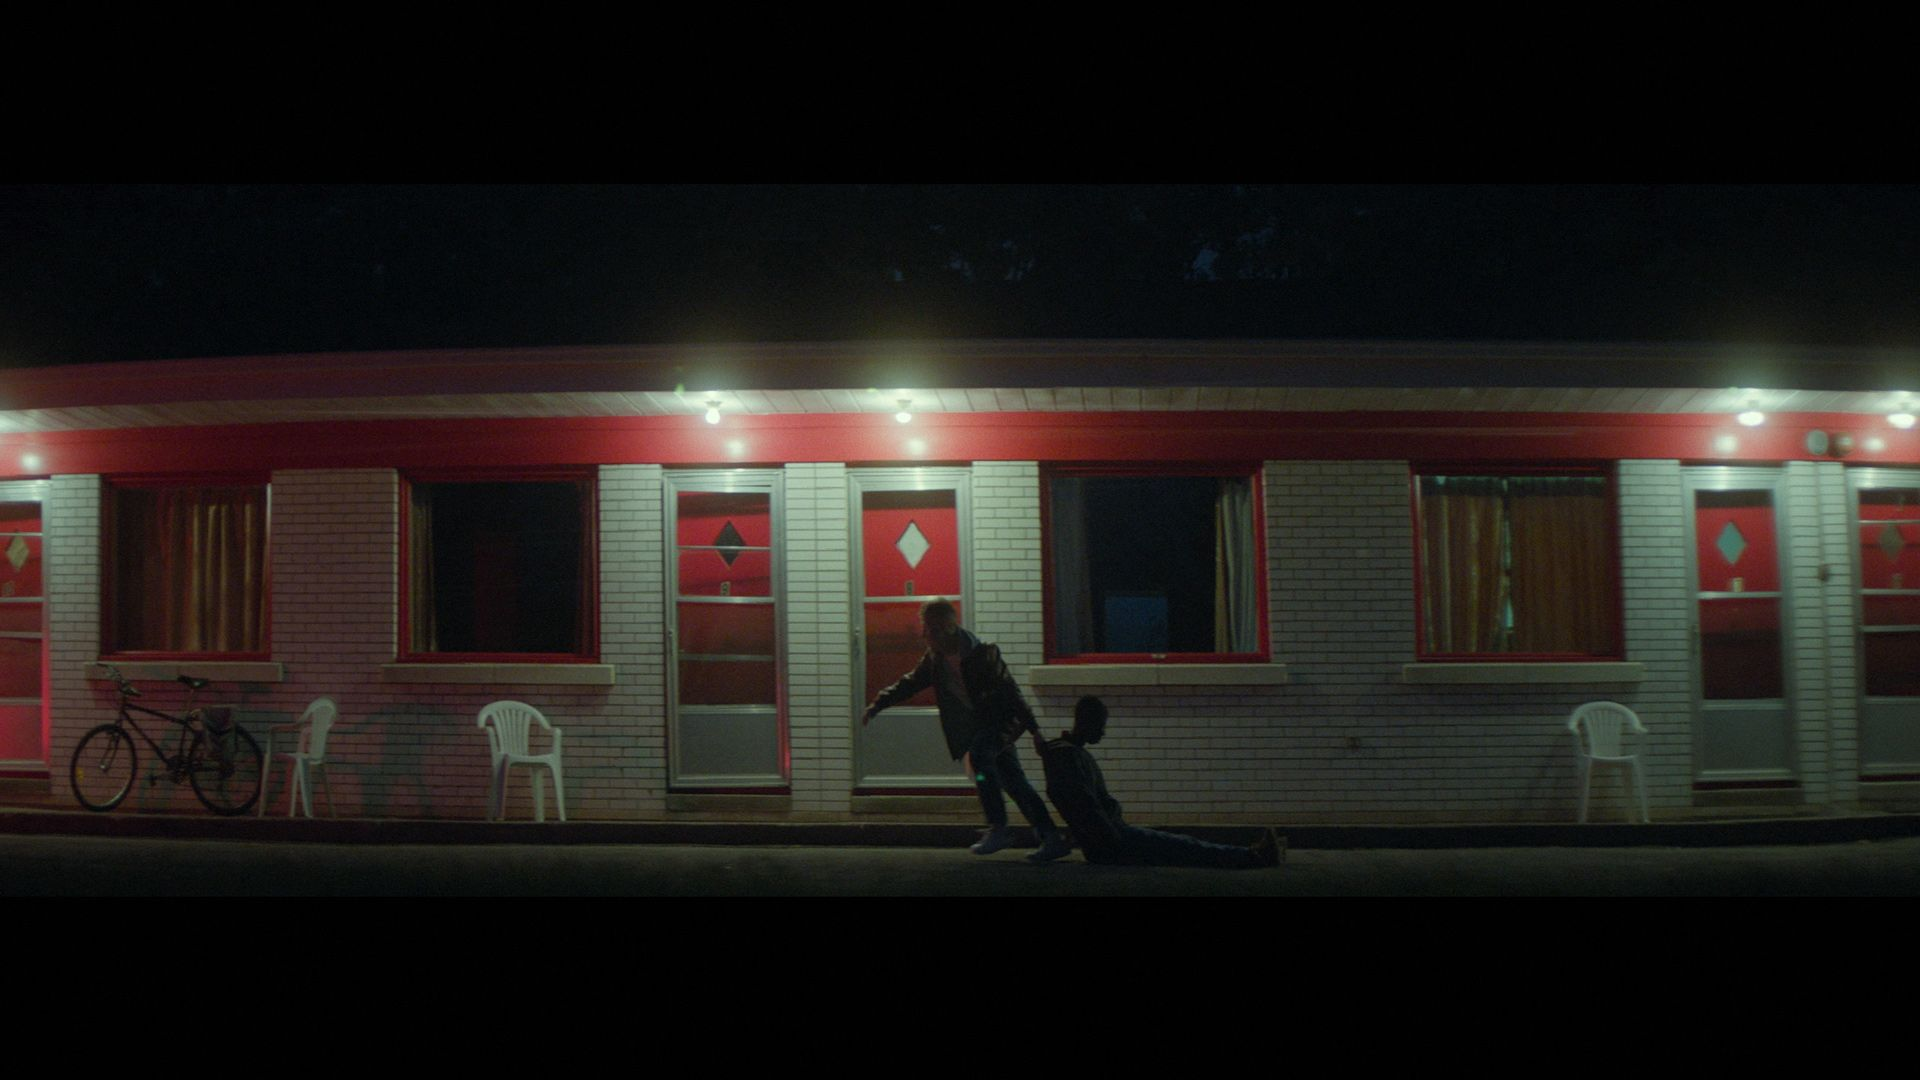 young blond man with wound on his head screaming in front of motel for music video of Karim Ouellet song Chapter 1 filmed by Les Gamins